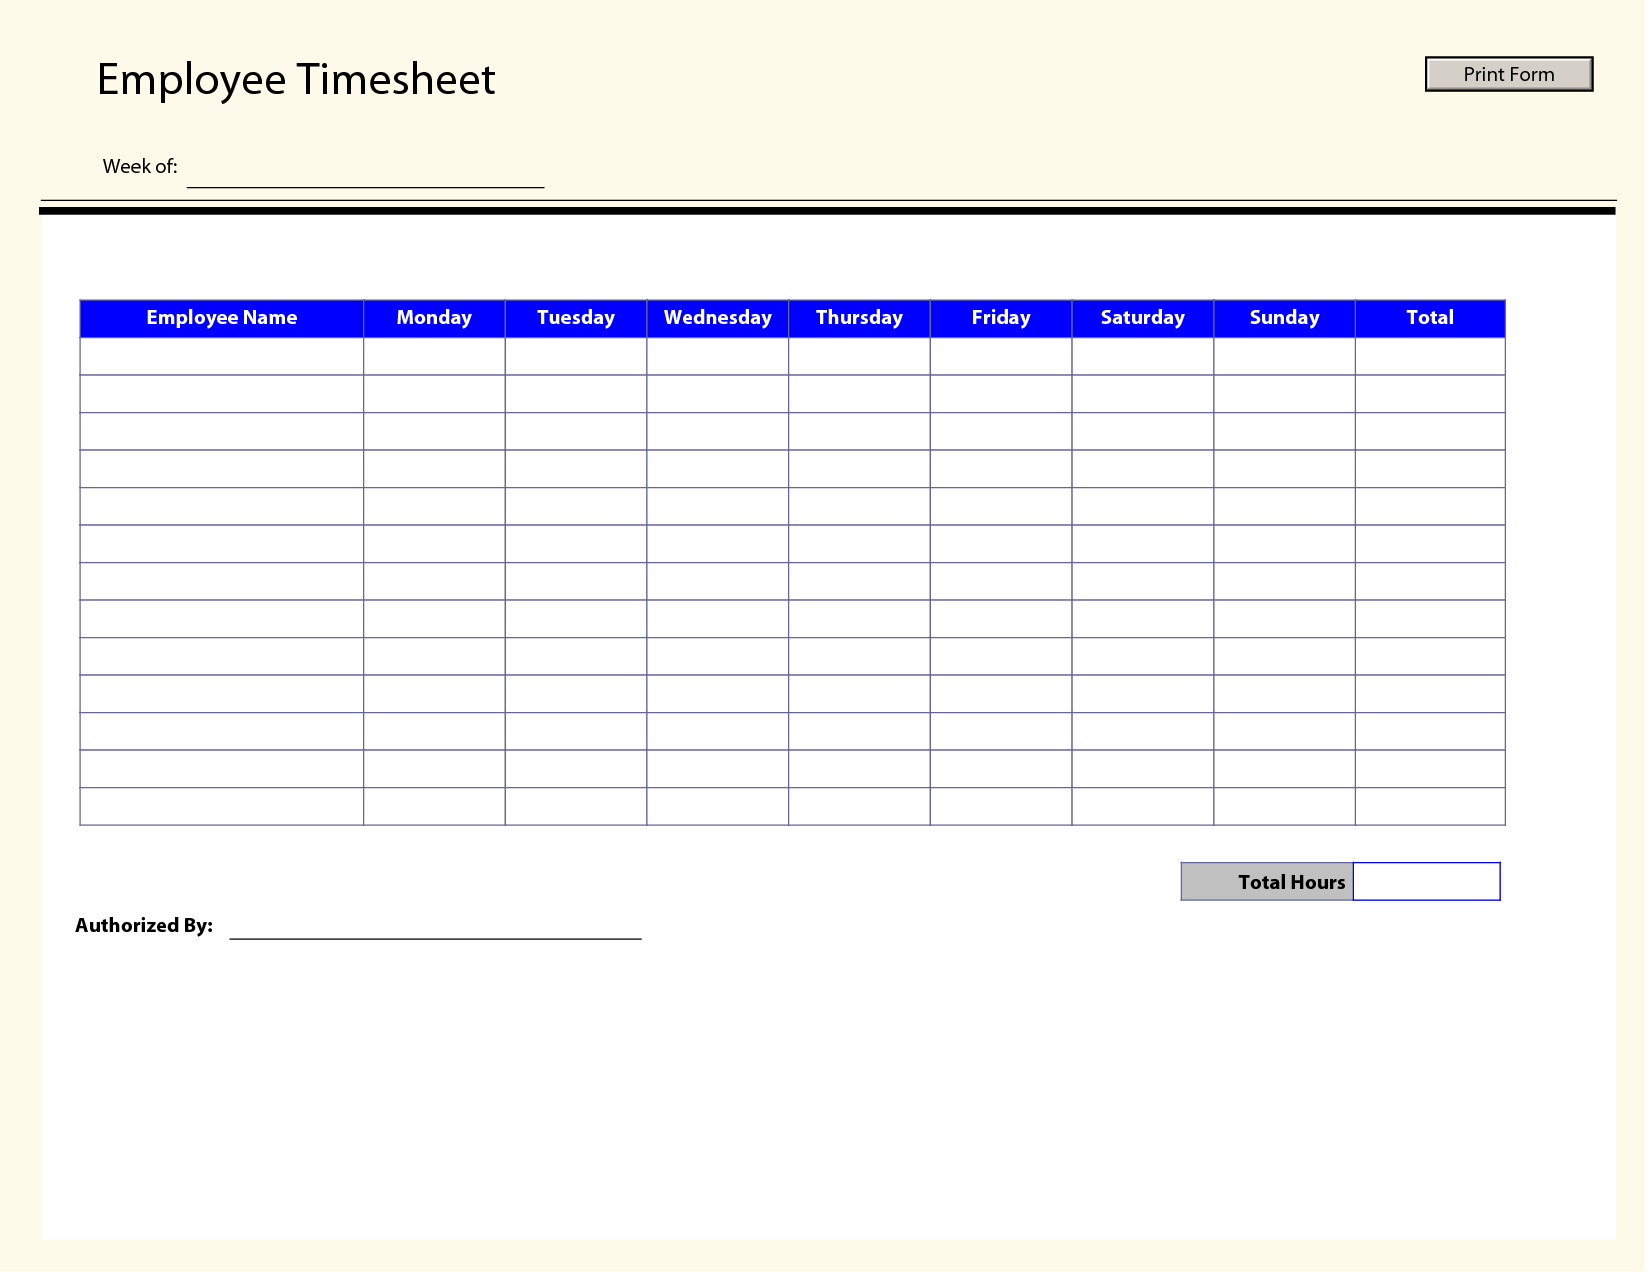 Weekly Employee Timesheet Template - Radiodignidad in Printable Blank Weekly Employee Schedule